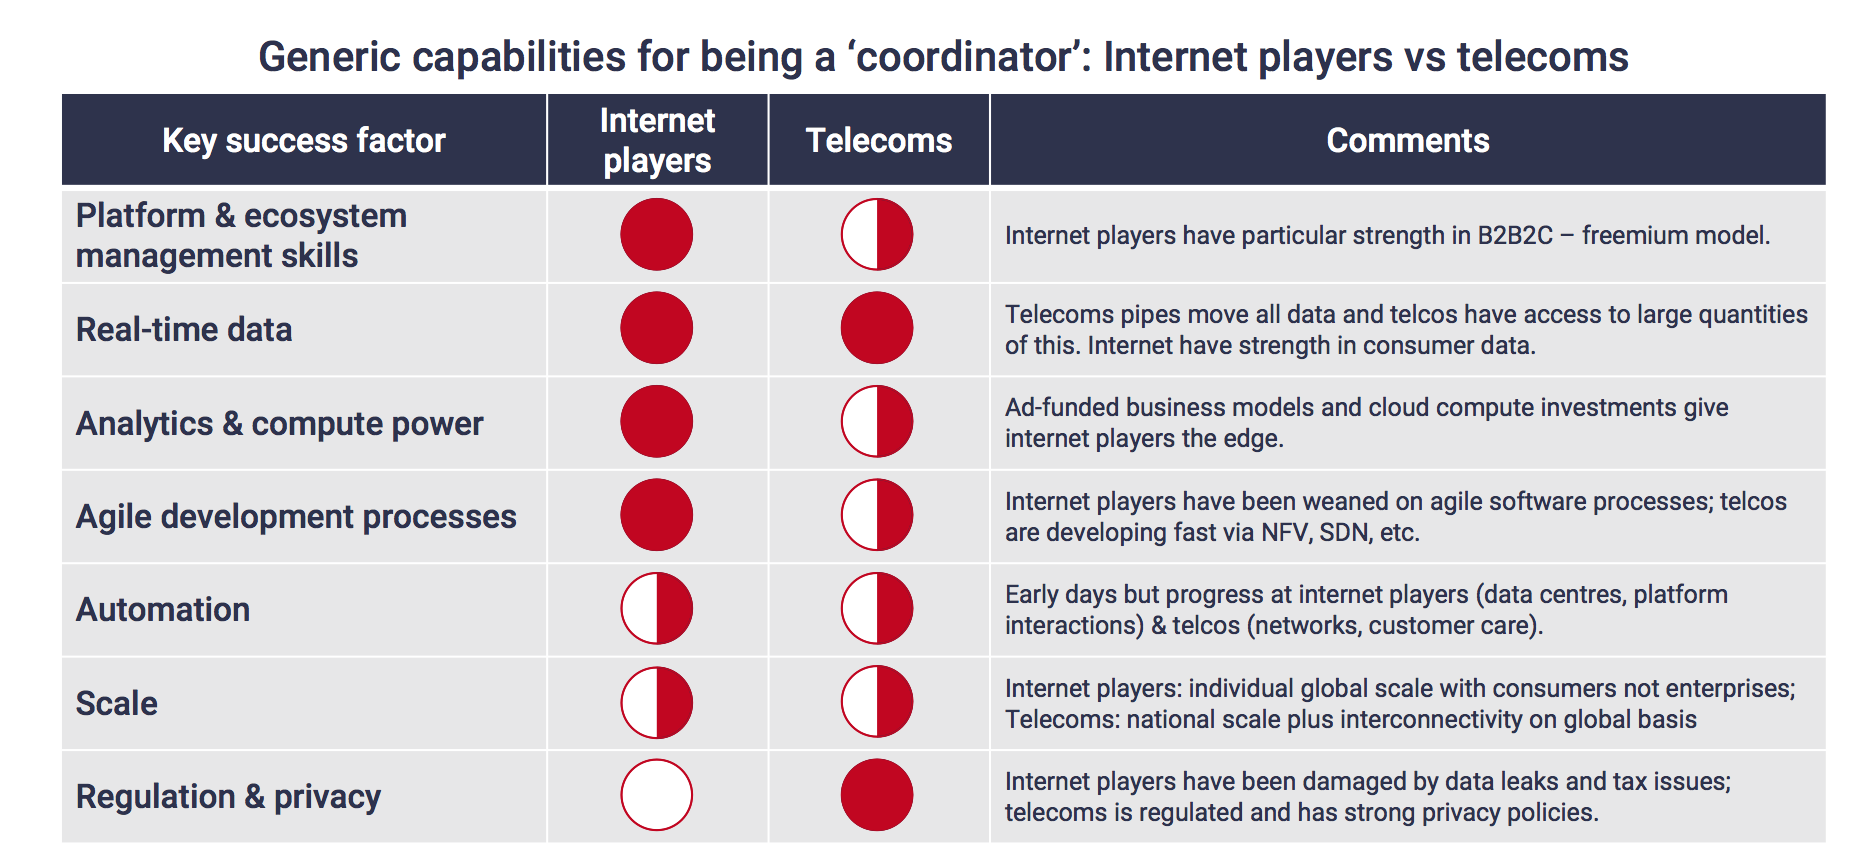 Generic capabilities for being a 'coordinator'- Internet players vs telecoms